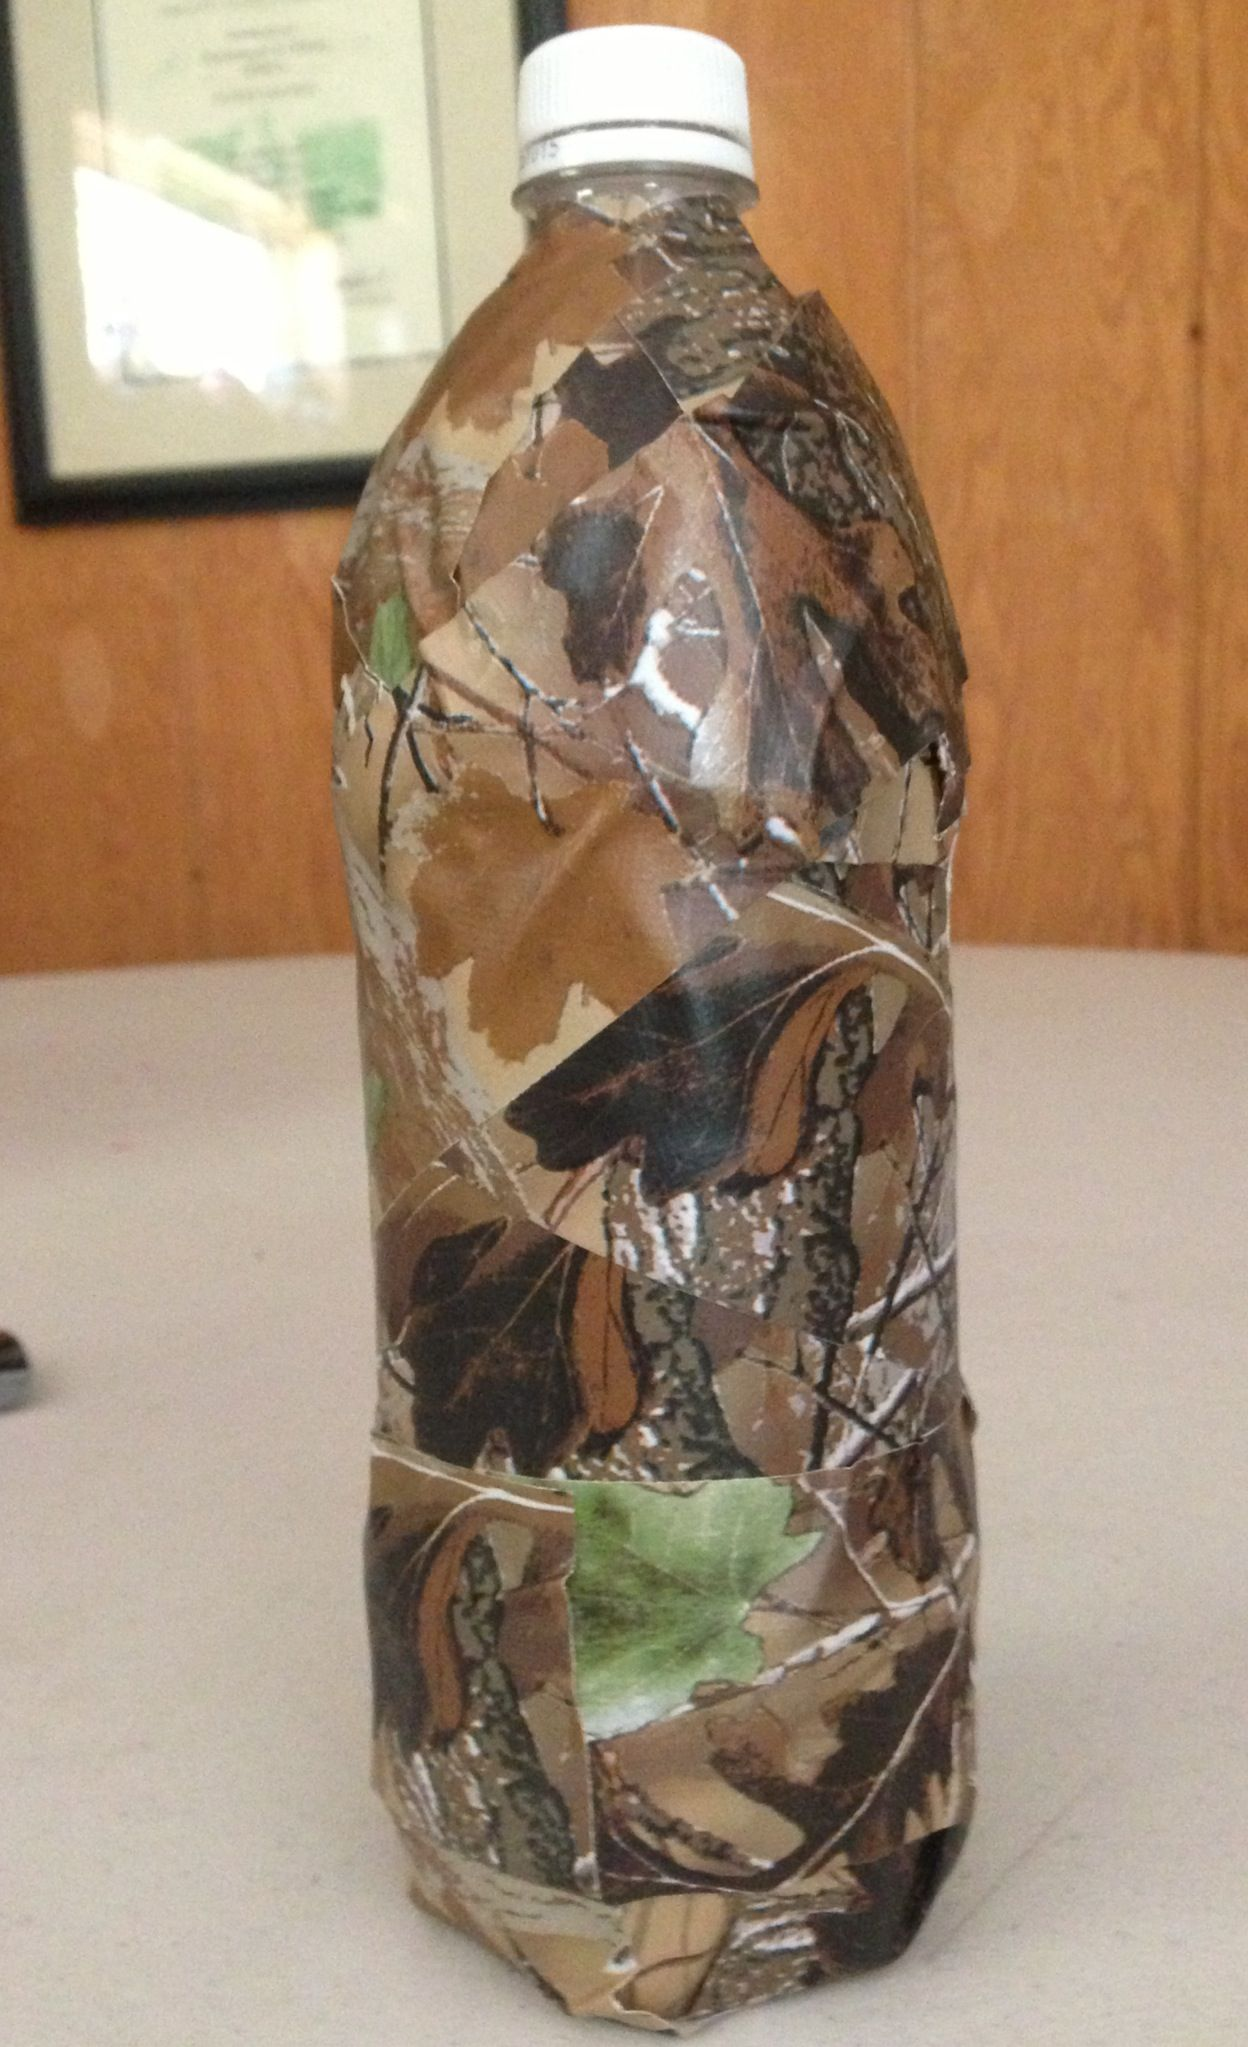 Camo water bottle made with camo duck tape.